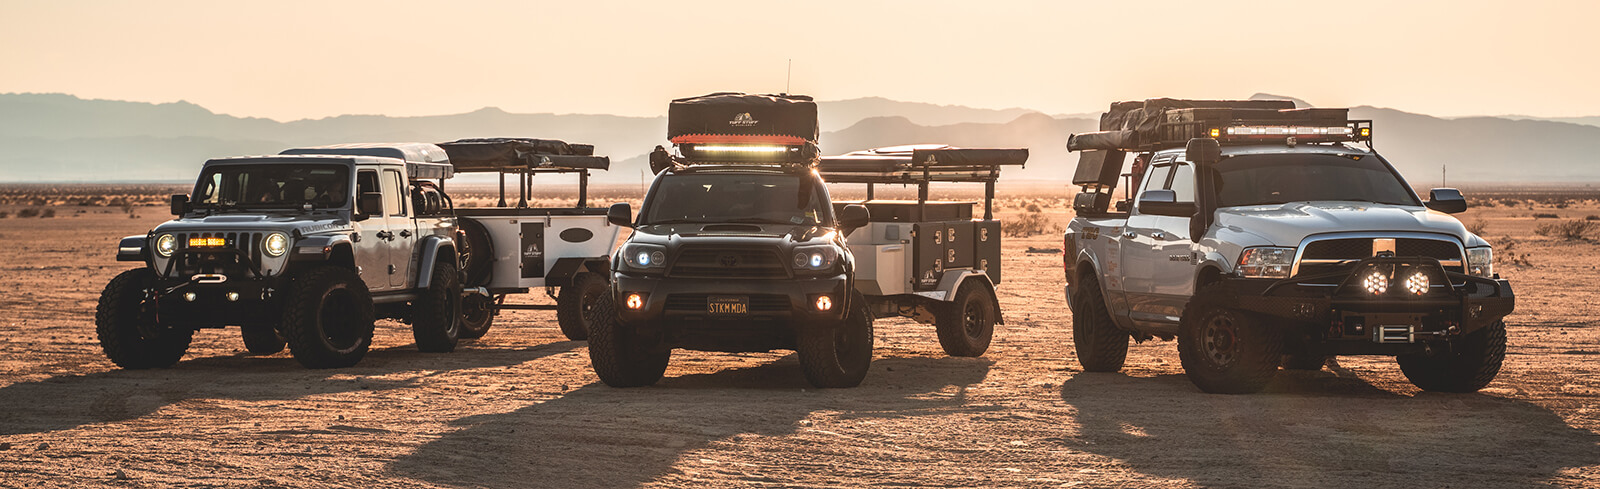 Three Tribe Overland Trailers in the desert